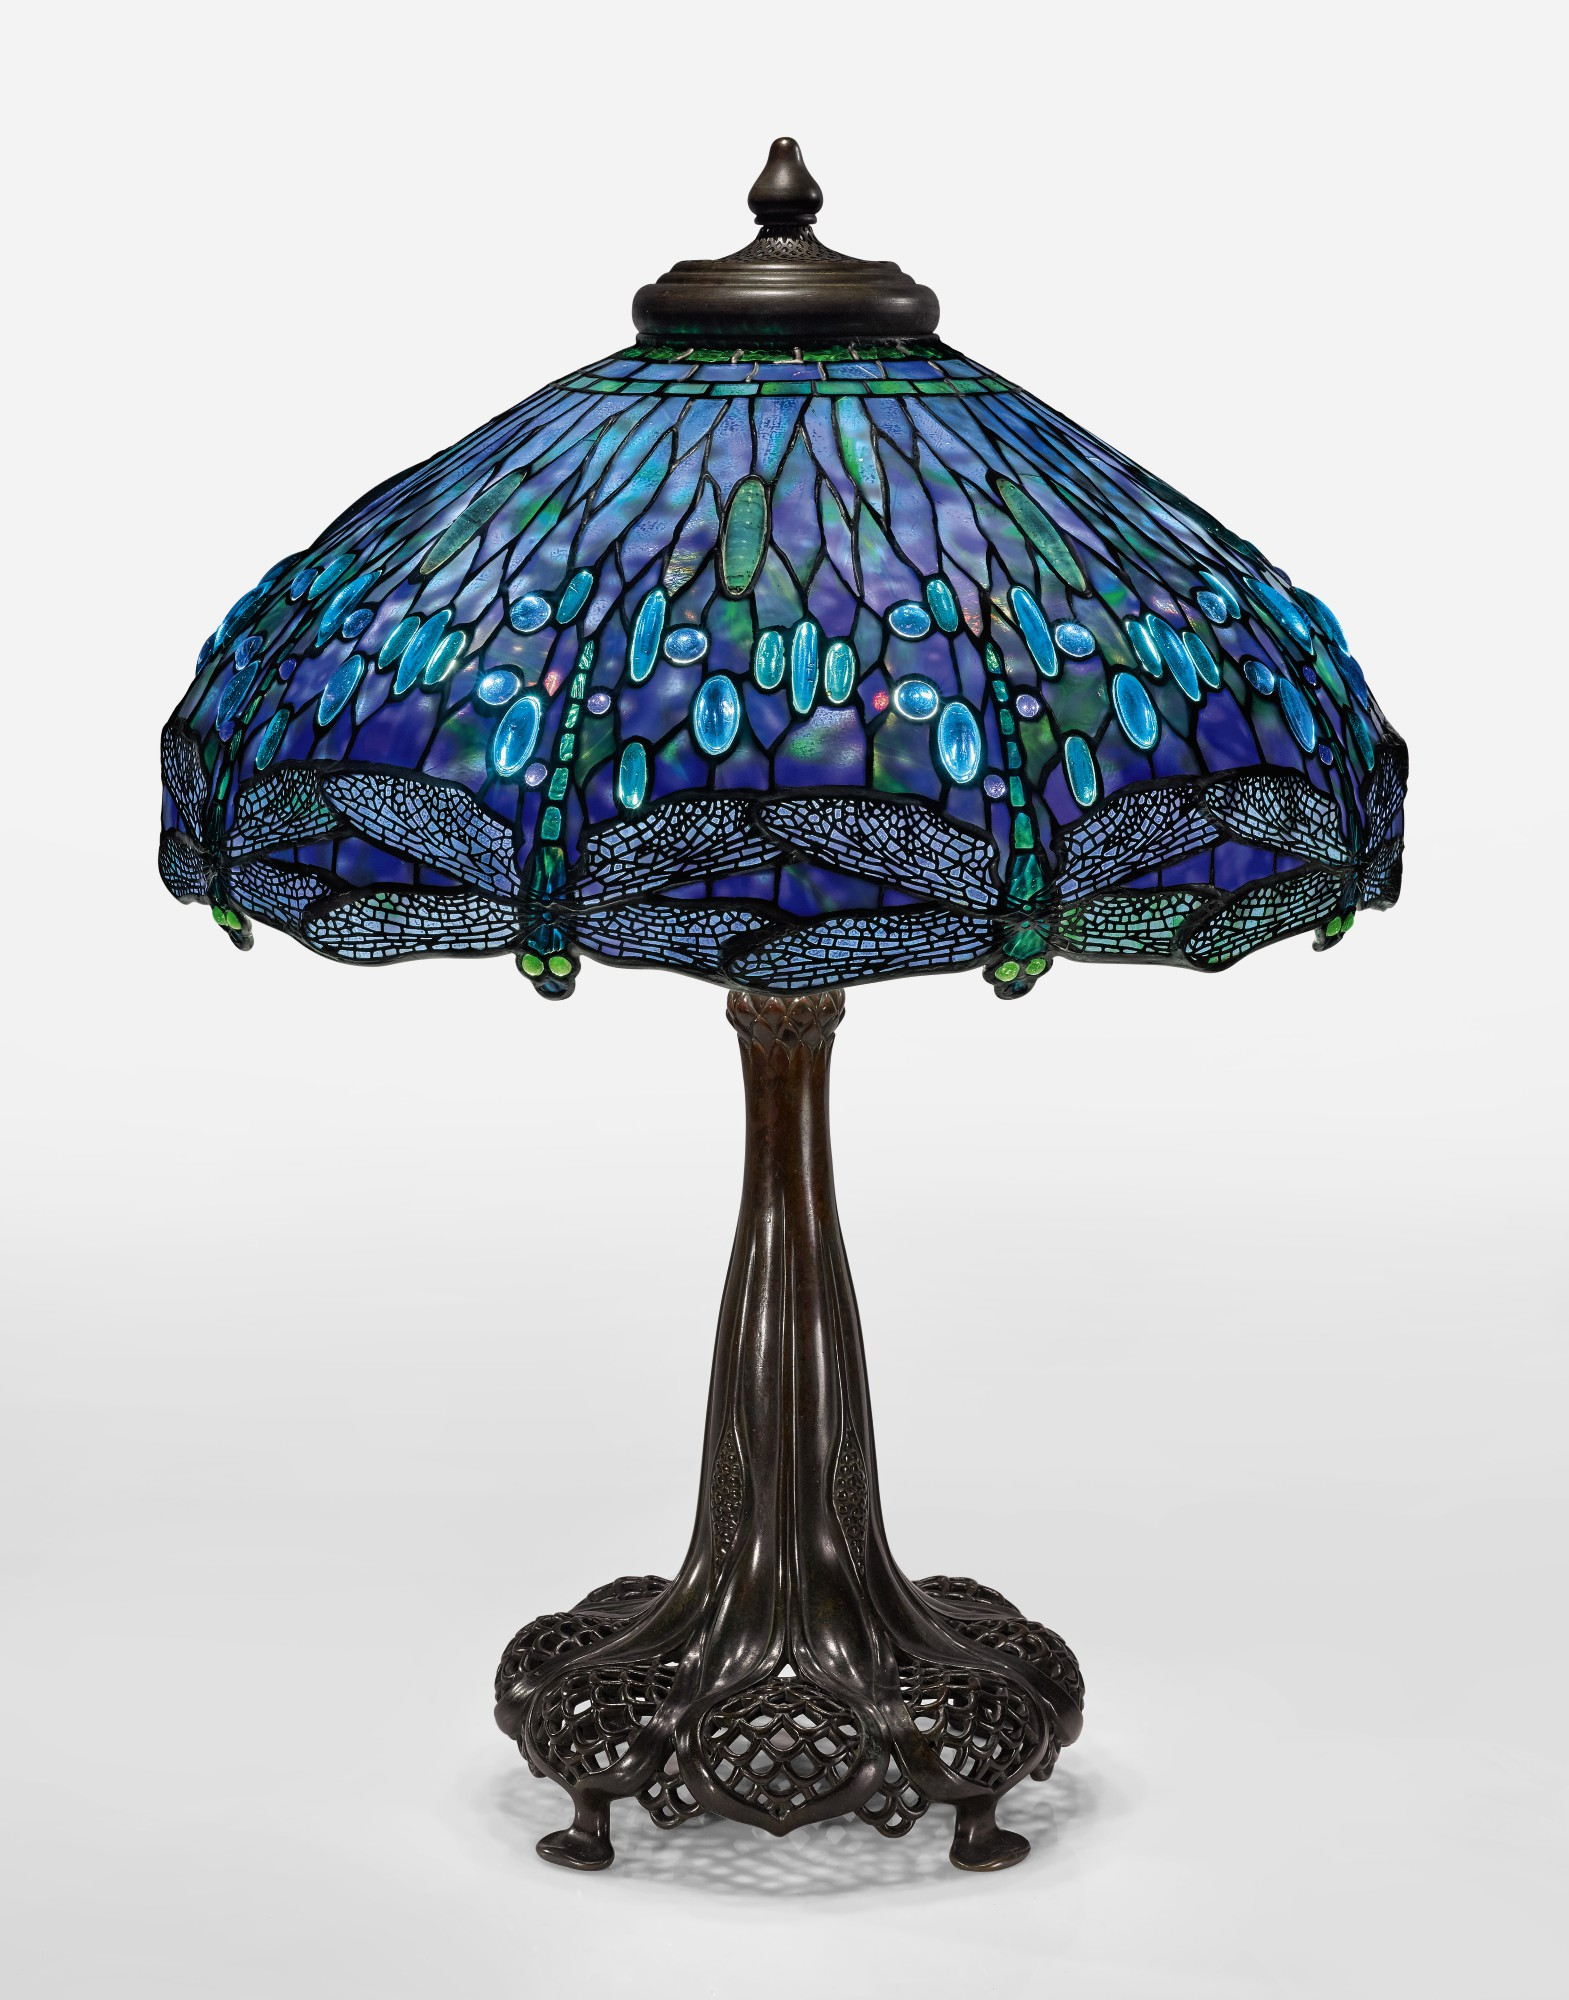 Tiffany Studios An Important Dragonfly Table Lamp Dreaming In Glass Masterworks By Tiffany Studios 20th Century Design Sotheby S